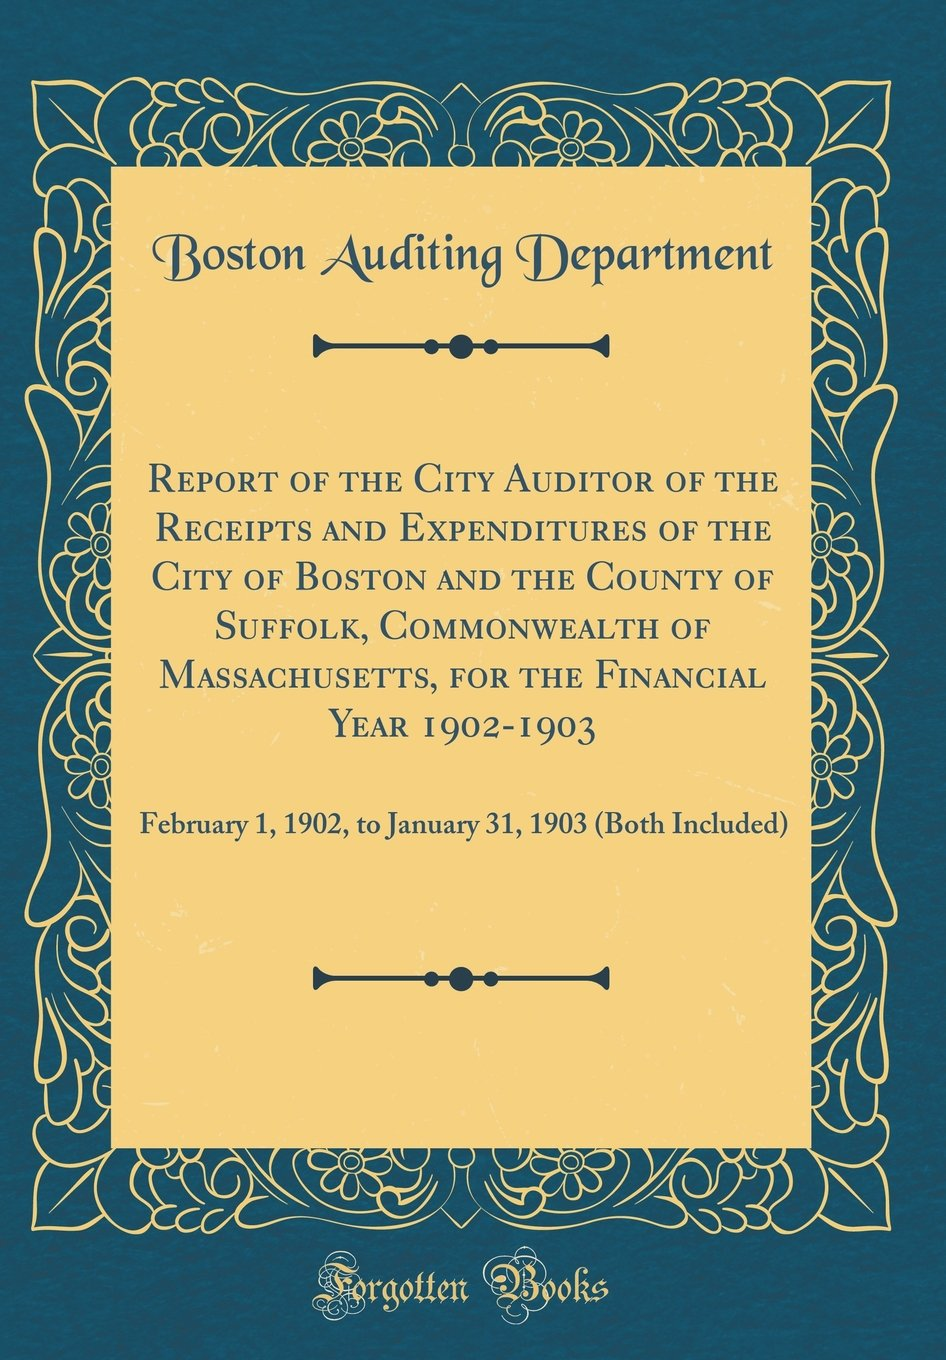 Download Report of the City Auditor of the Receipts and Expenditures of the City of Boston and the County of Suffolk, Commonwealth of Massachusetts, for the ... 31, 1903 (Both Included) (Classic Reprint) pdf